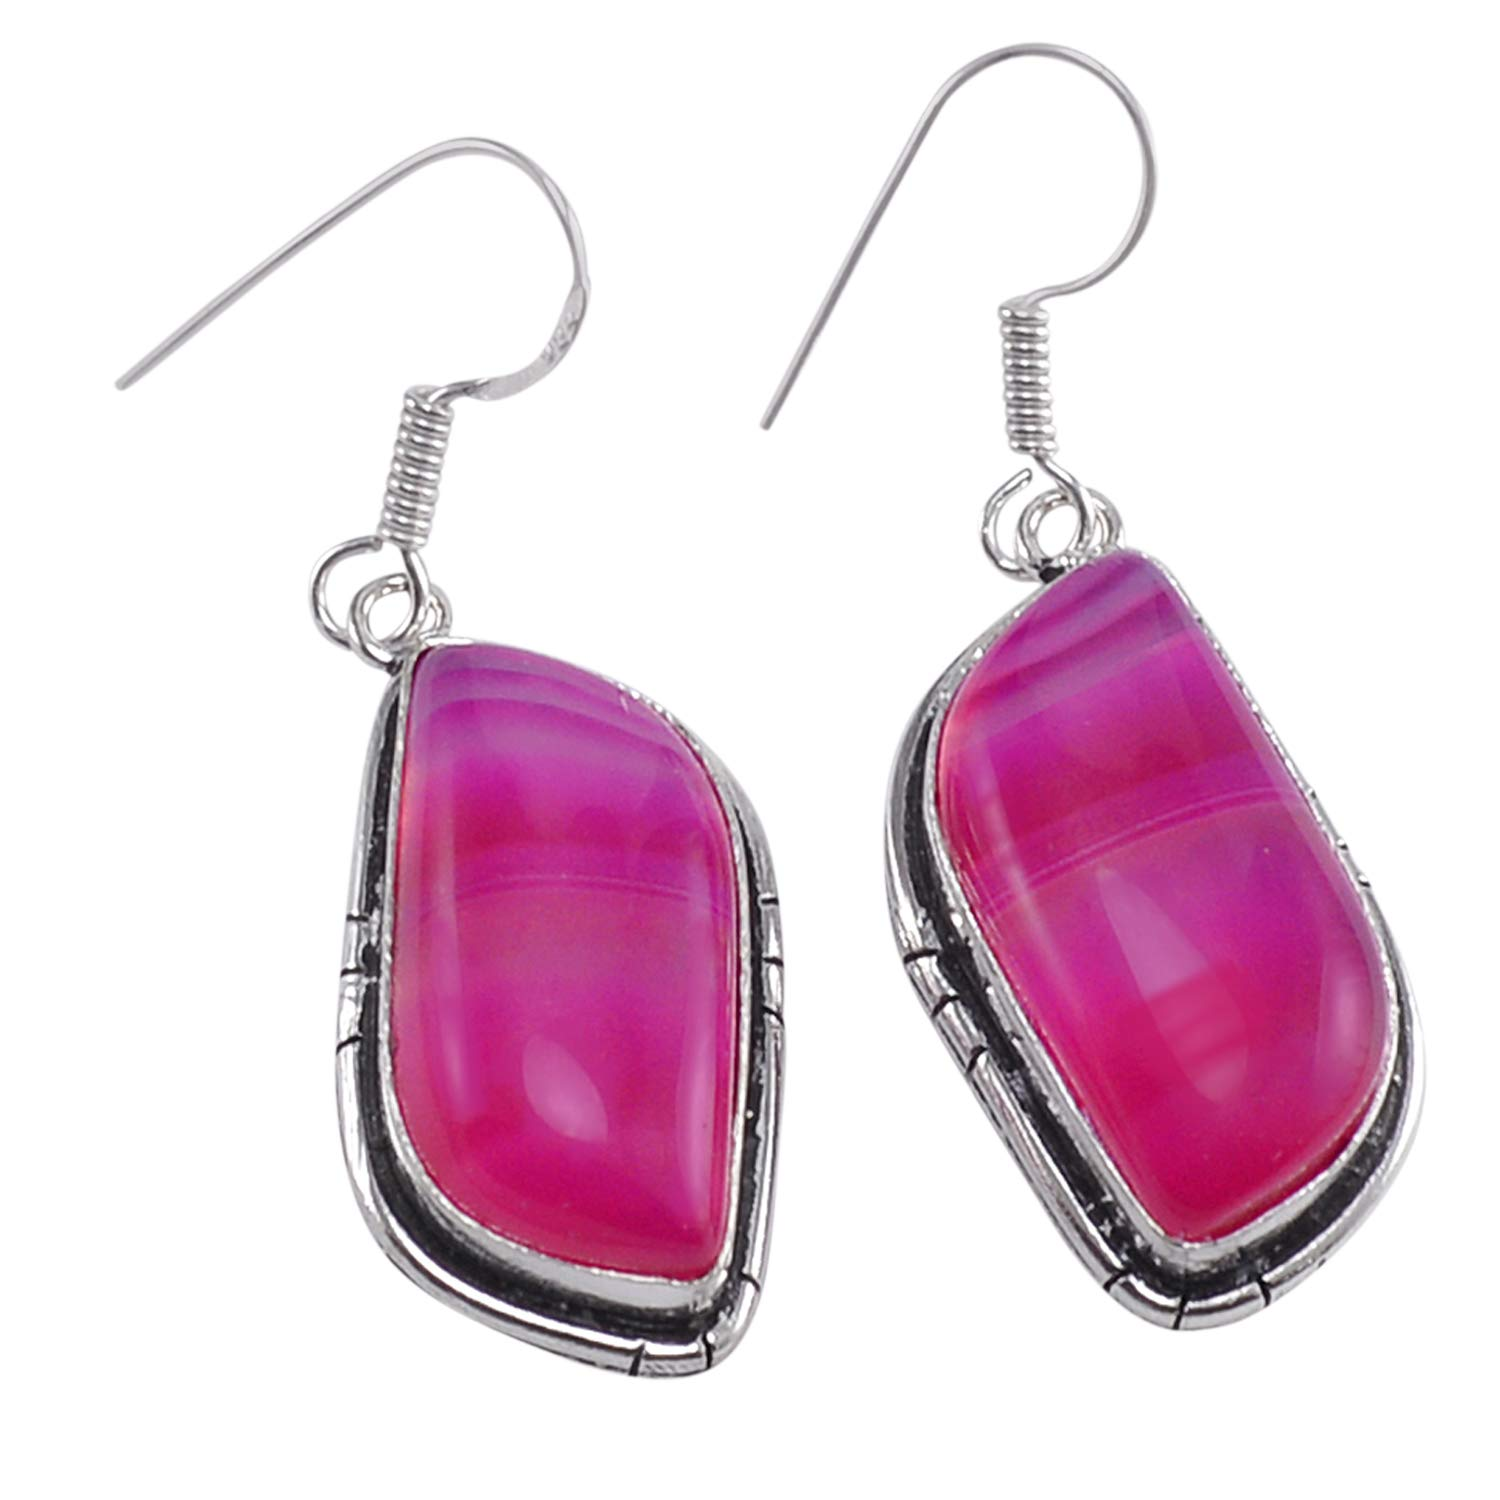 Saamarth Impex Striped Onyx Gemstone 925 Silver Plated Dangle Earring PG-120388